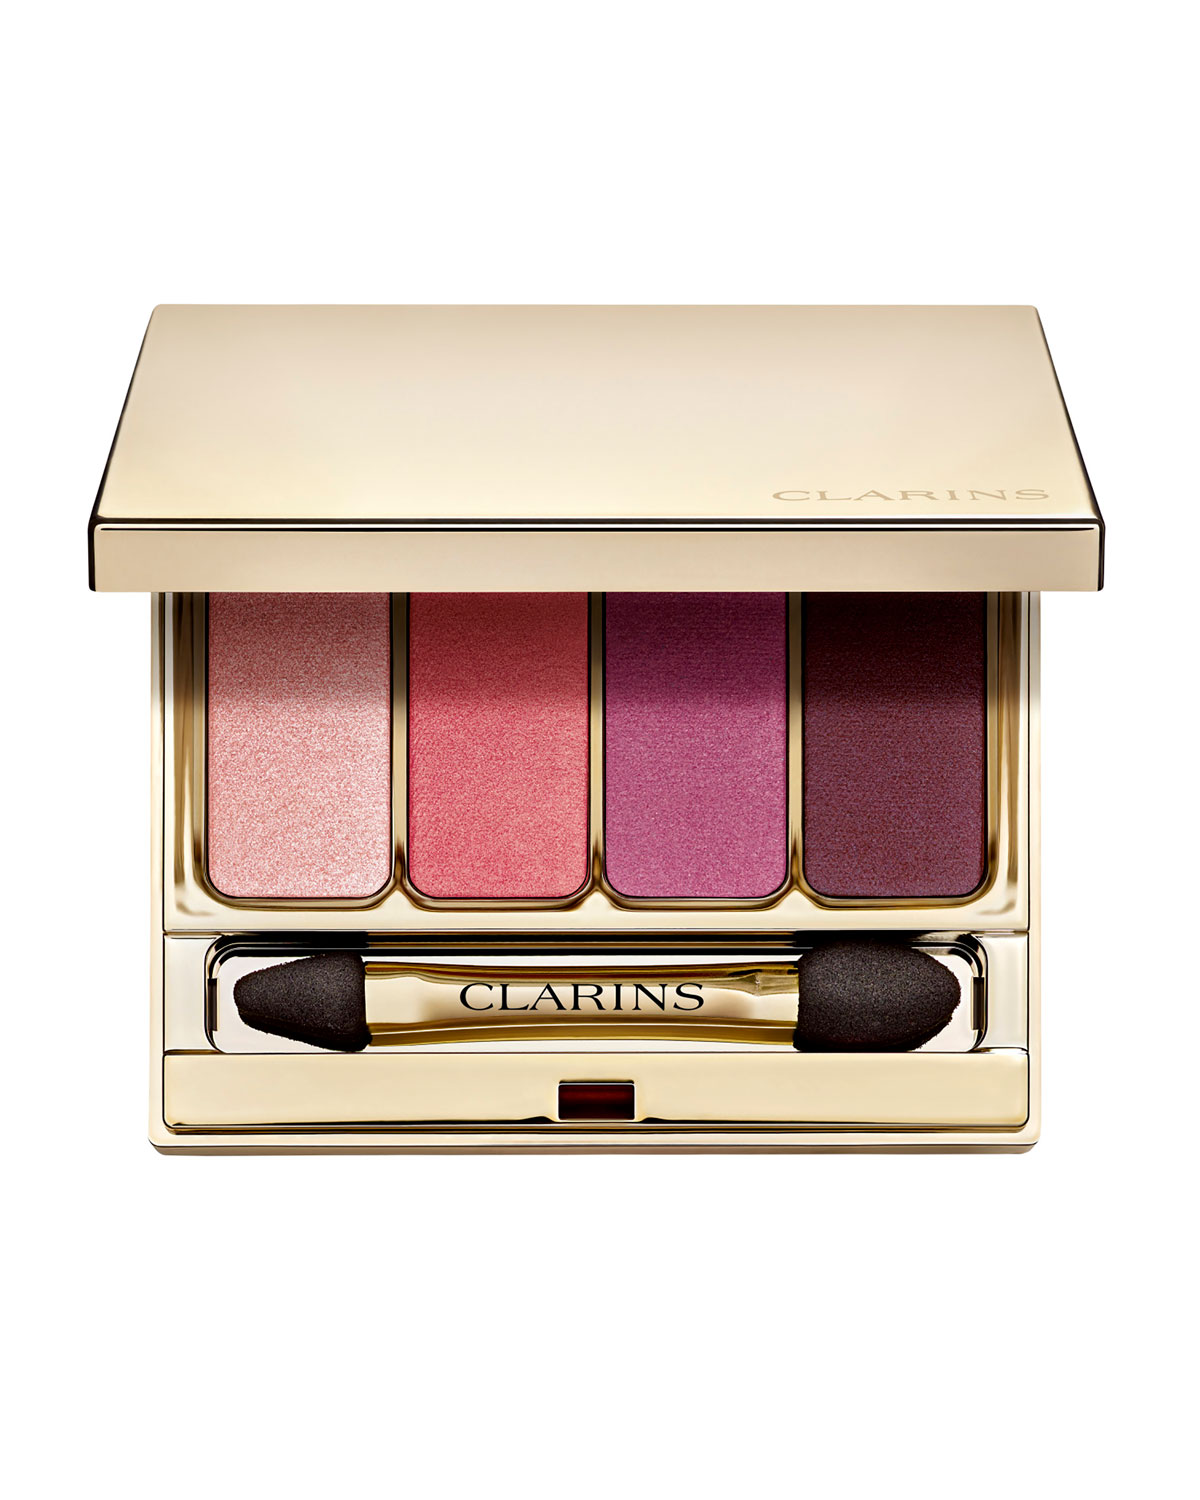 Clarins Colour Definition Fall 2011 Makeup Collection: Clarins 4 Color Eyeshadow Palette